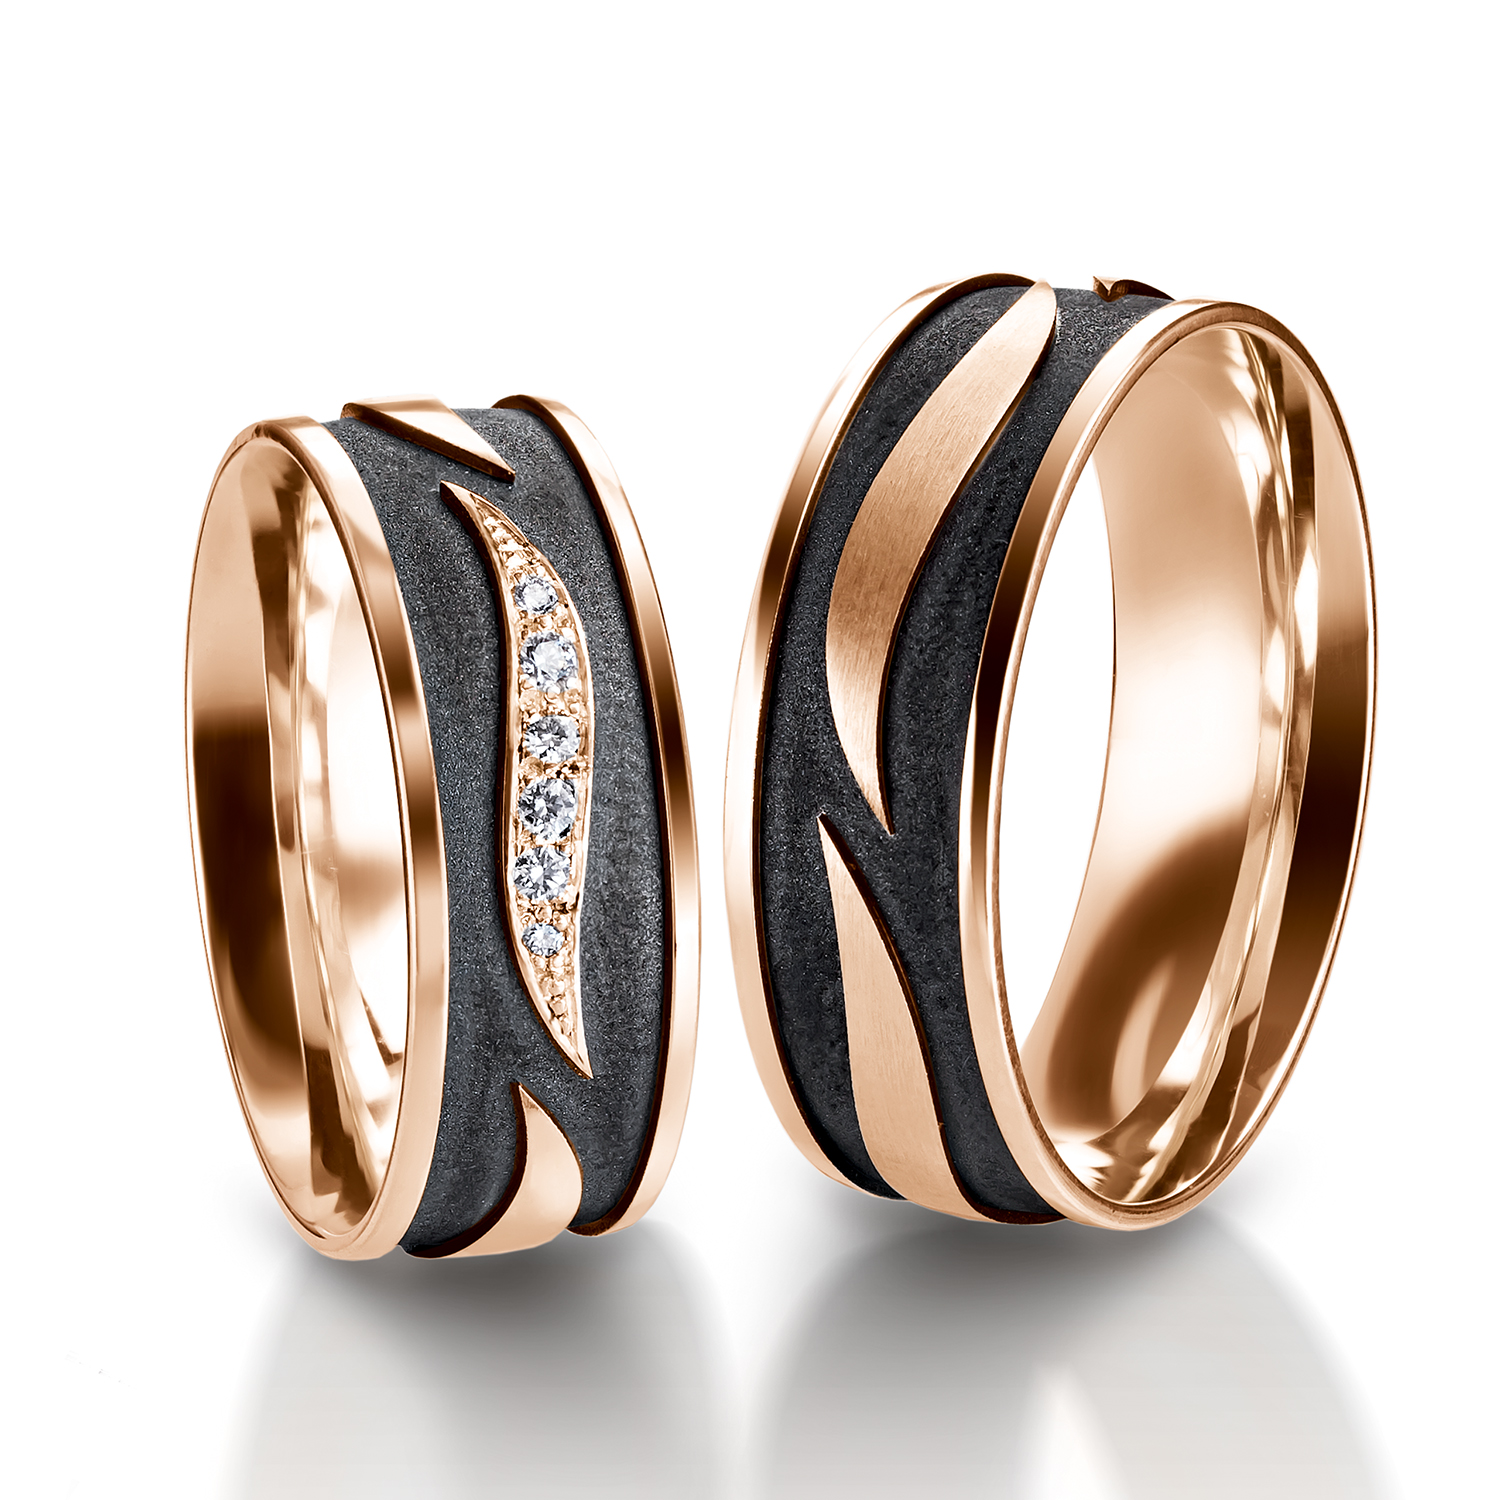 Rings in gold, platinum, palladium and black with diamonds Furrer Jacot